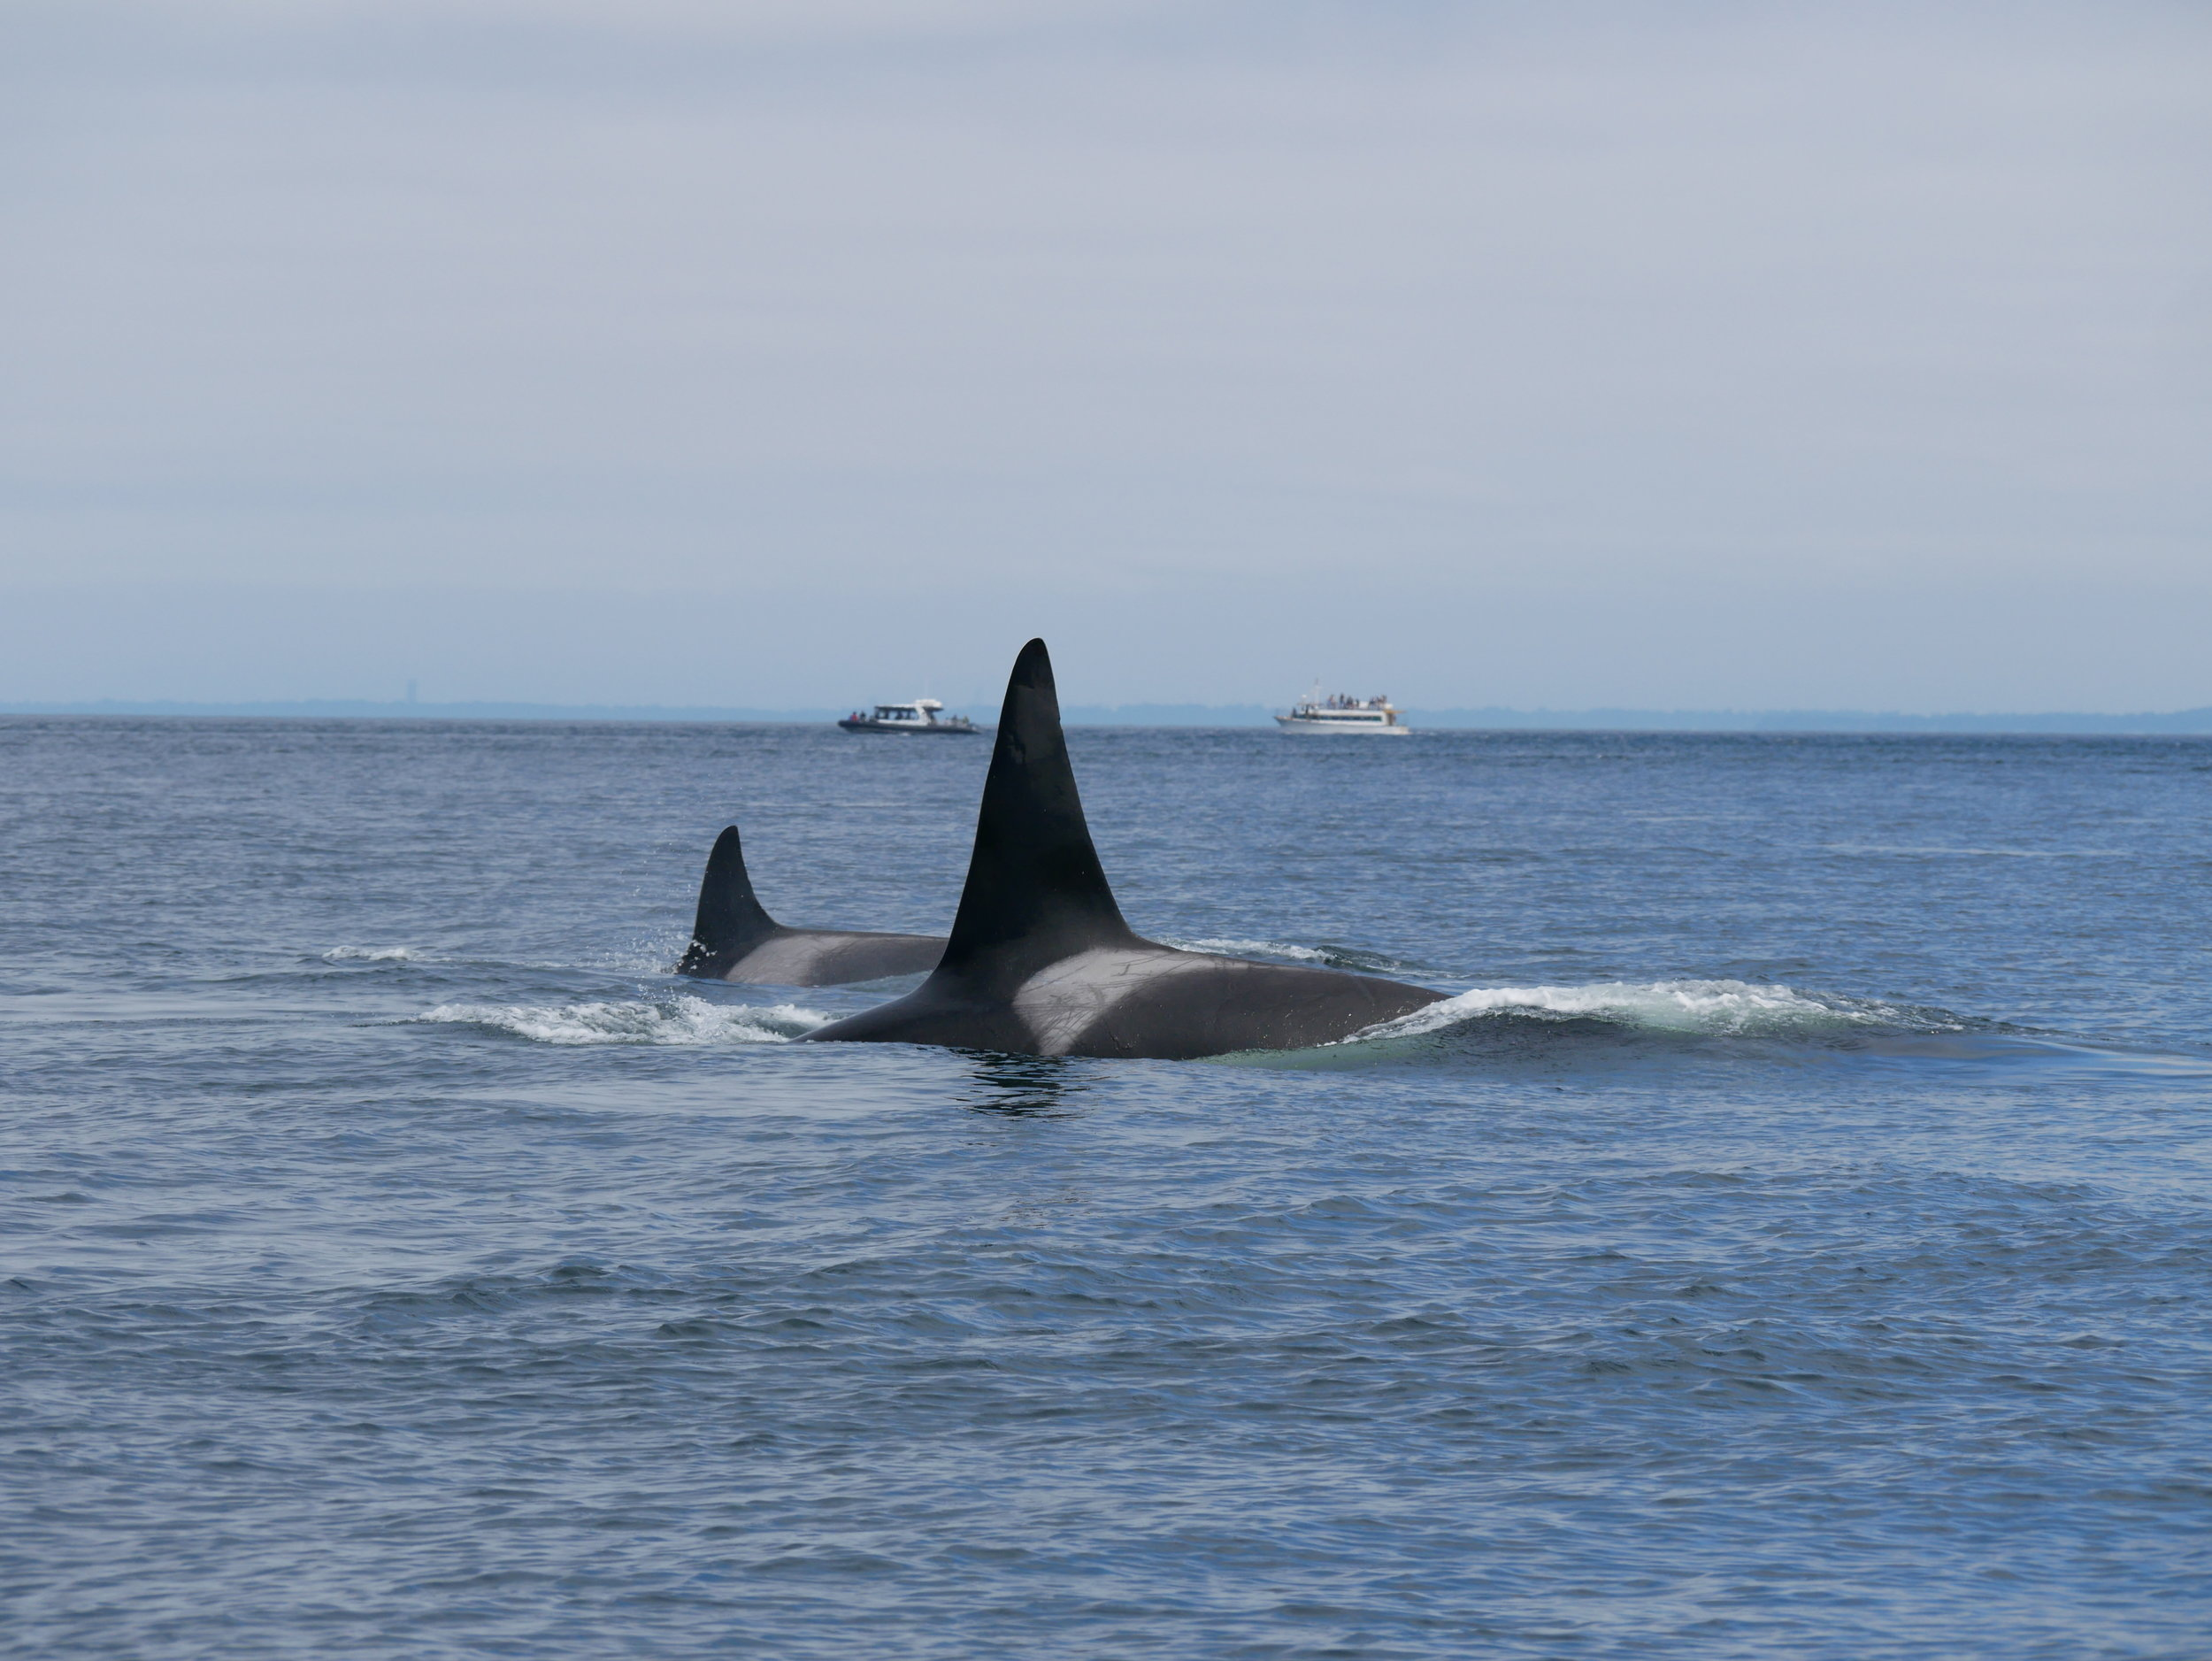 Check out the size difference here! WOW! Photo by Val Watson